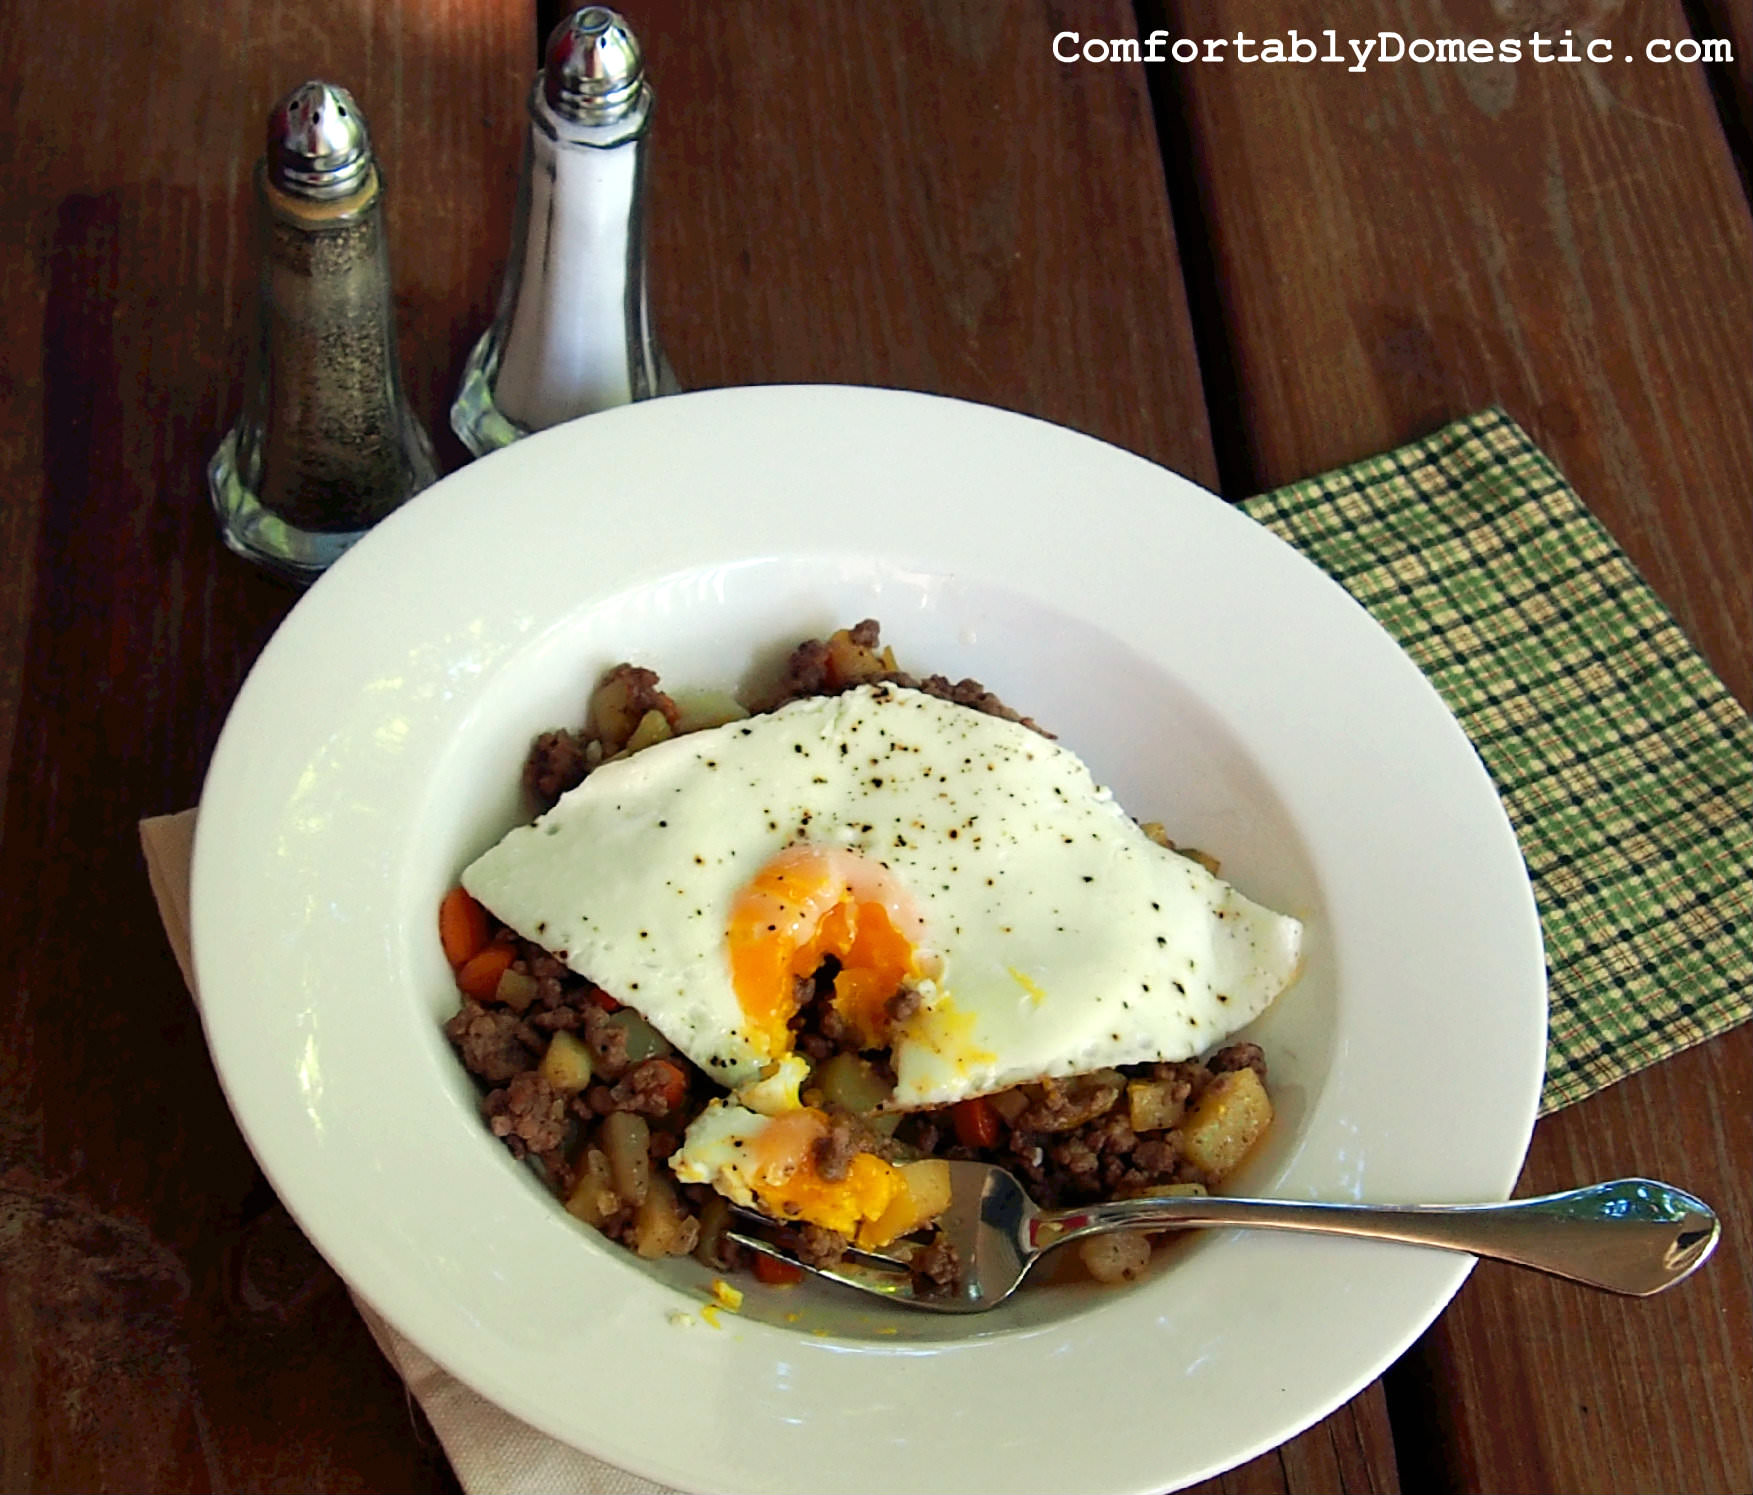 Hash and Eggs made with Pasty filling from ComfortablyDomestic.com